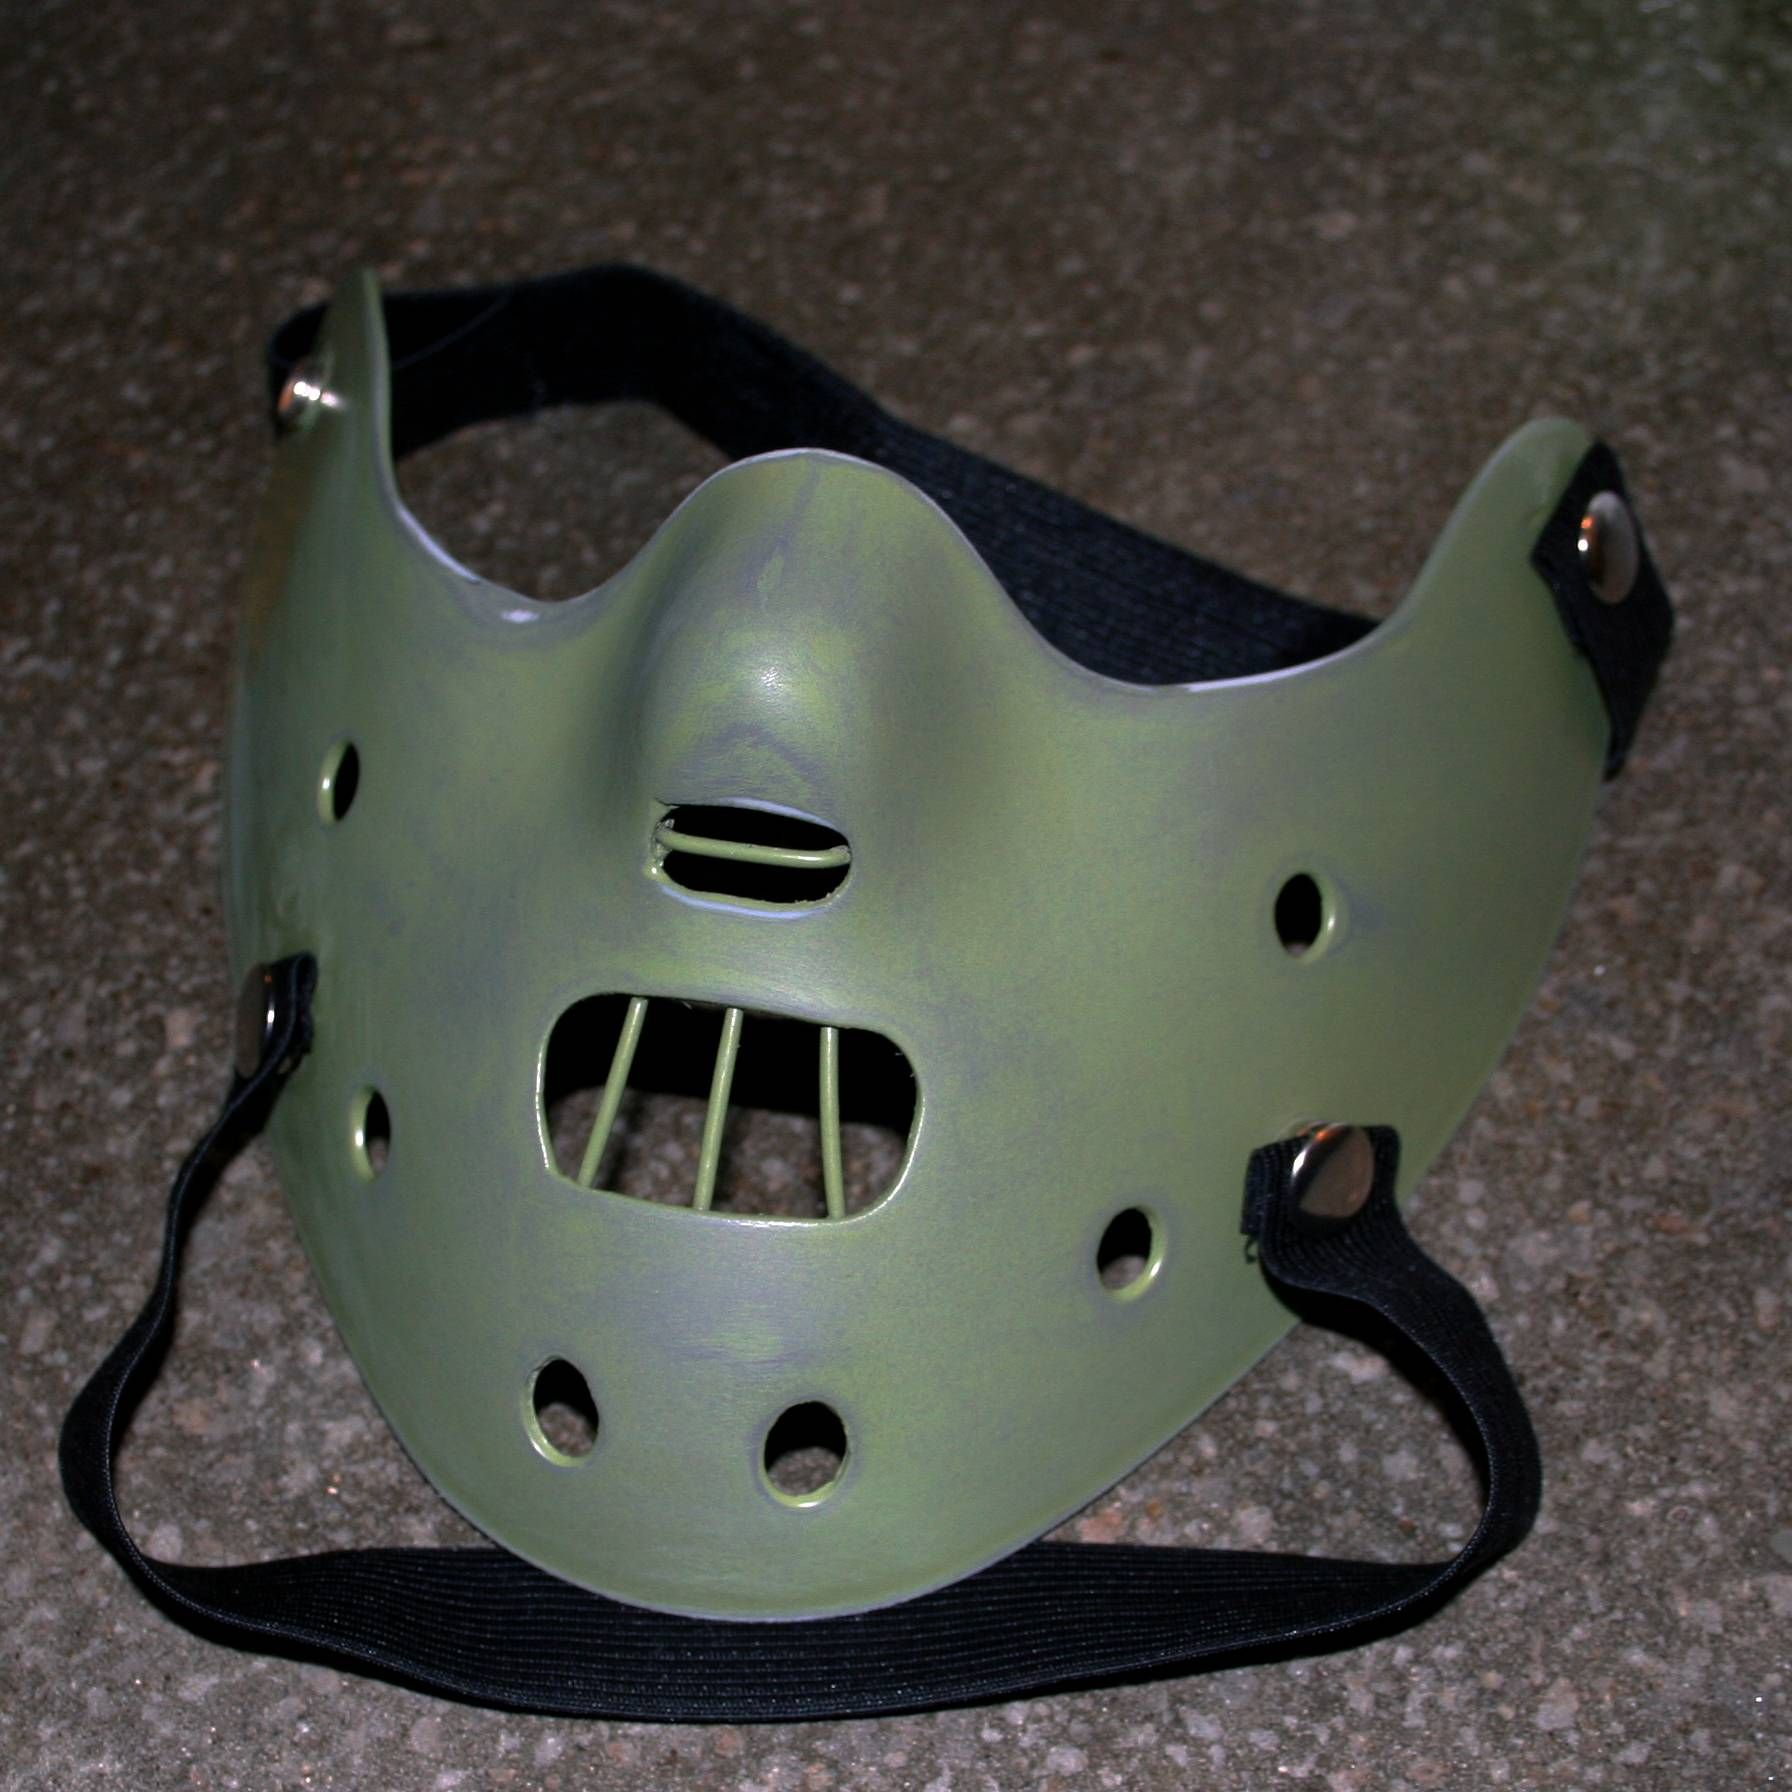 I Ve Made A Hannibal Lecter Mask From A Halloween Hockey Mask Handmade Crafts Howto Diy Hannibal Lecter Mask Halloween Costumes For Teens Hannibal